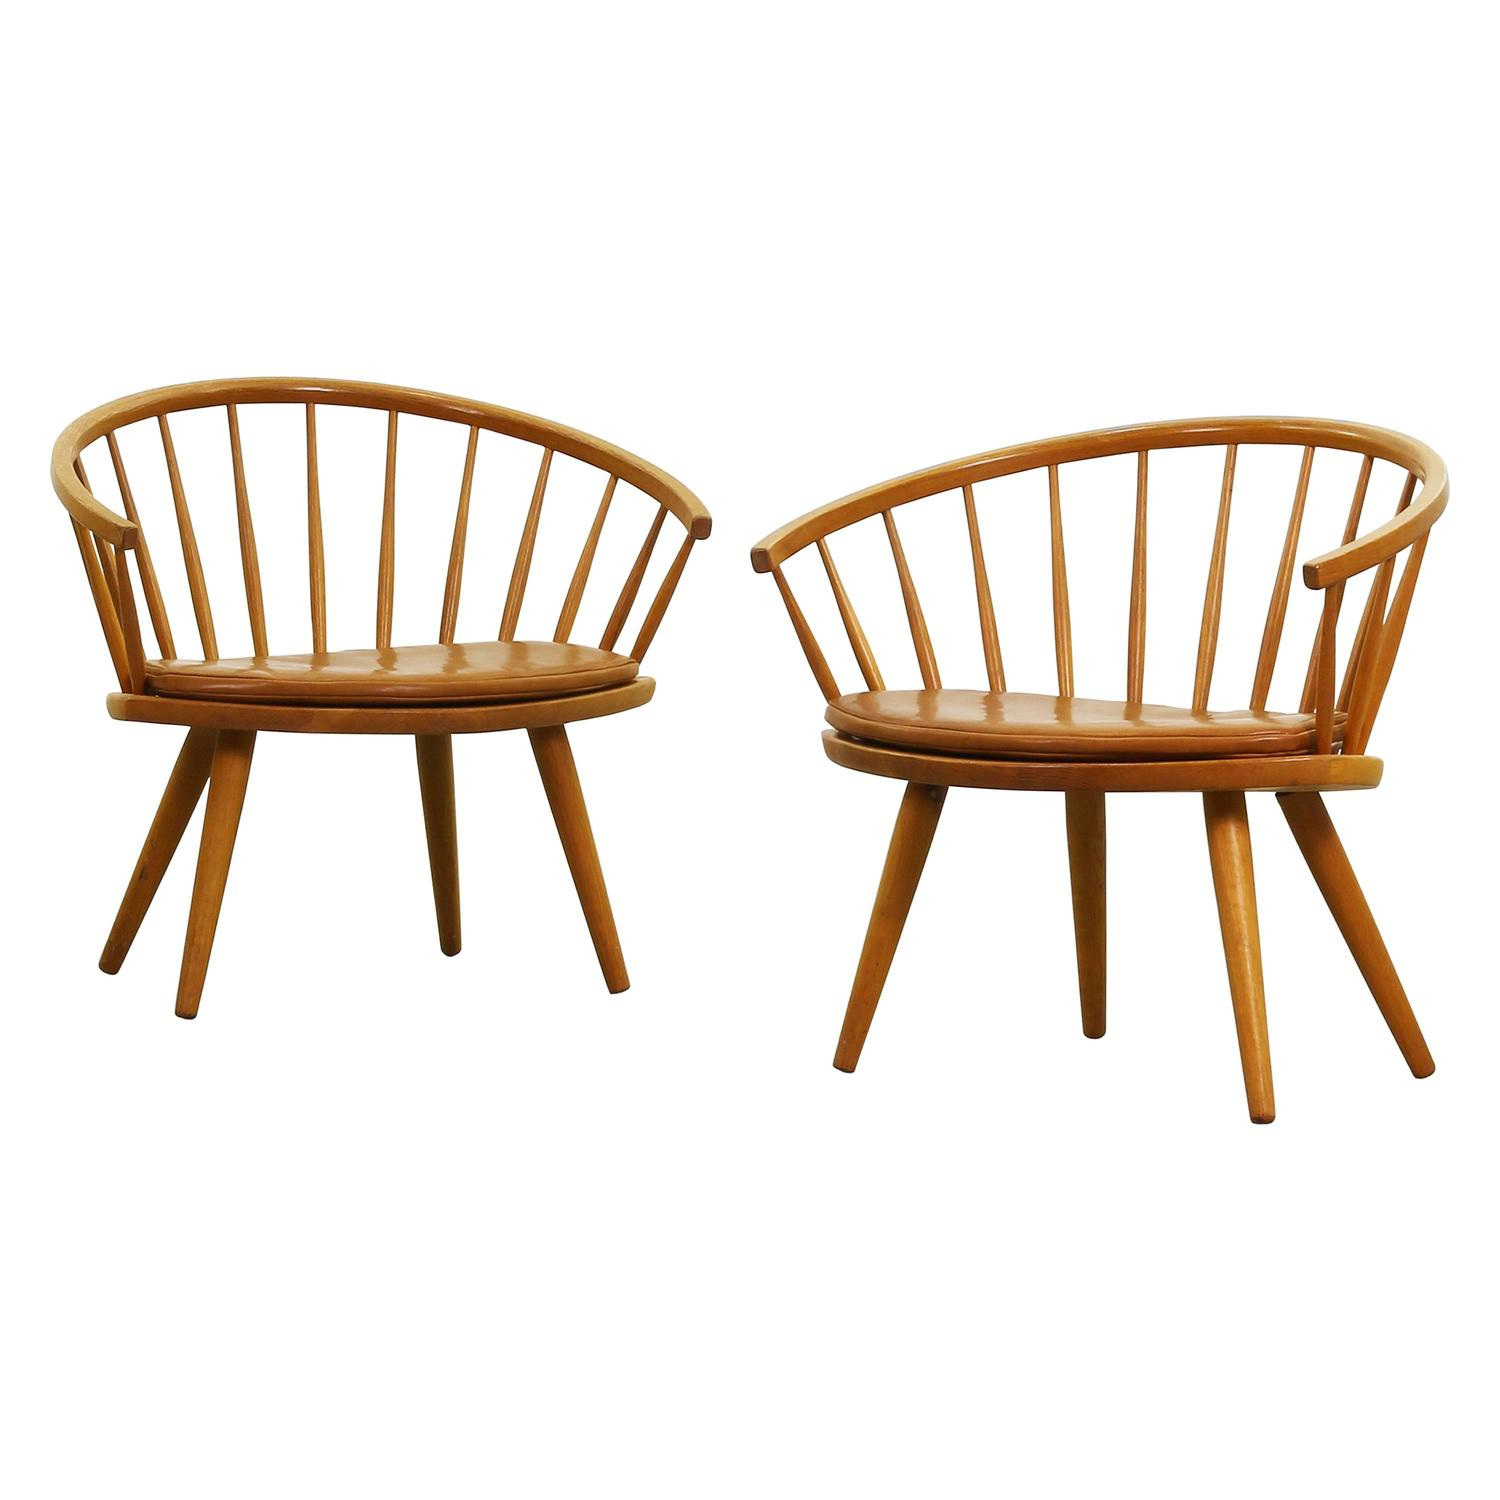 Beautiful Pair of Lounge Easy Chair by Yngve Ekström for Stolab For Sale at 1stdibs